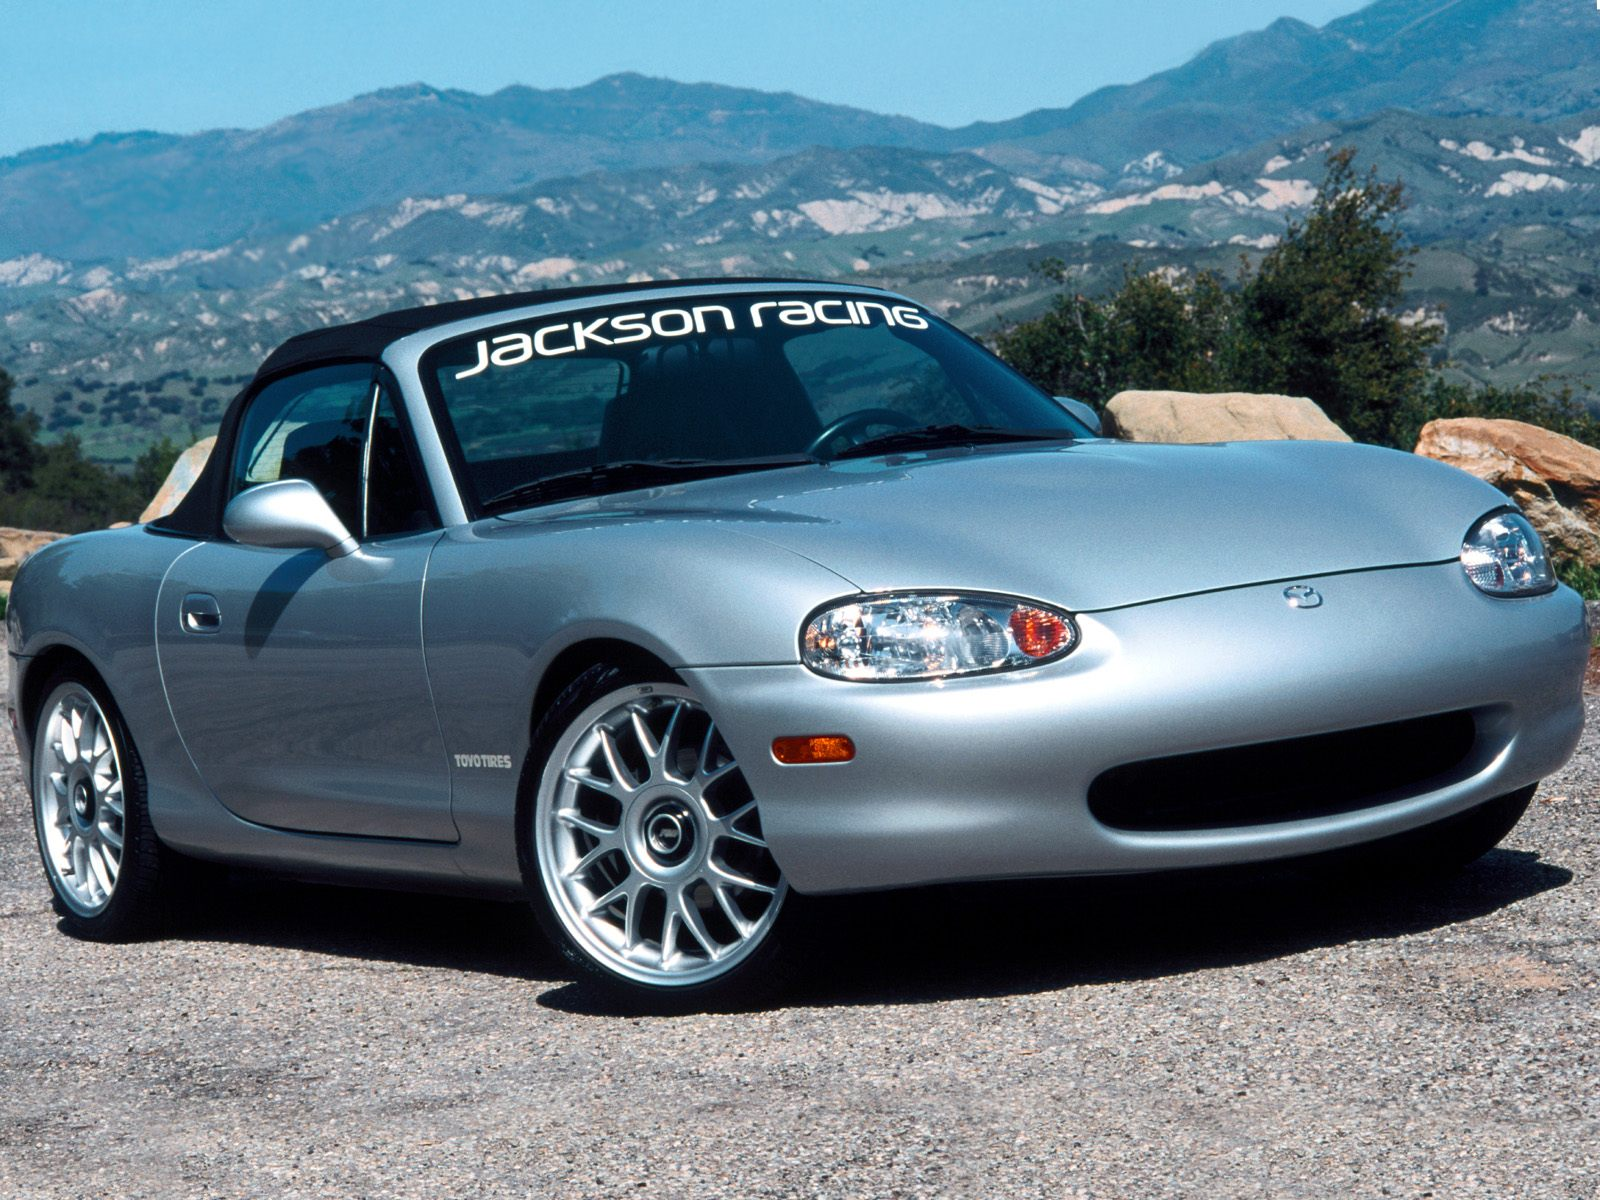 medium resolution of repair manual mazda miata 1997 wiring diagram when trying to locate a component in a wiring diagram and you don t know the specific system where it is